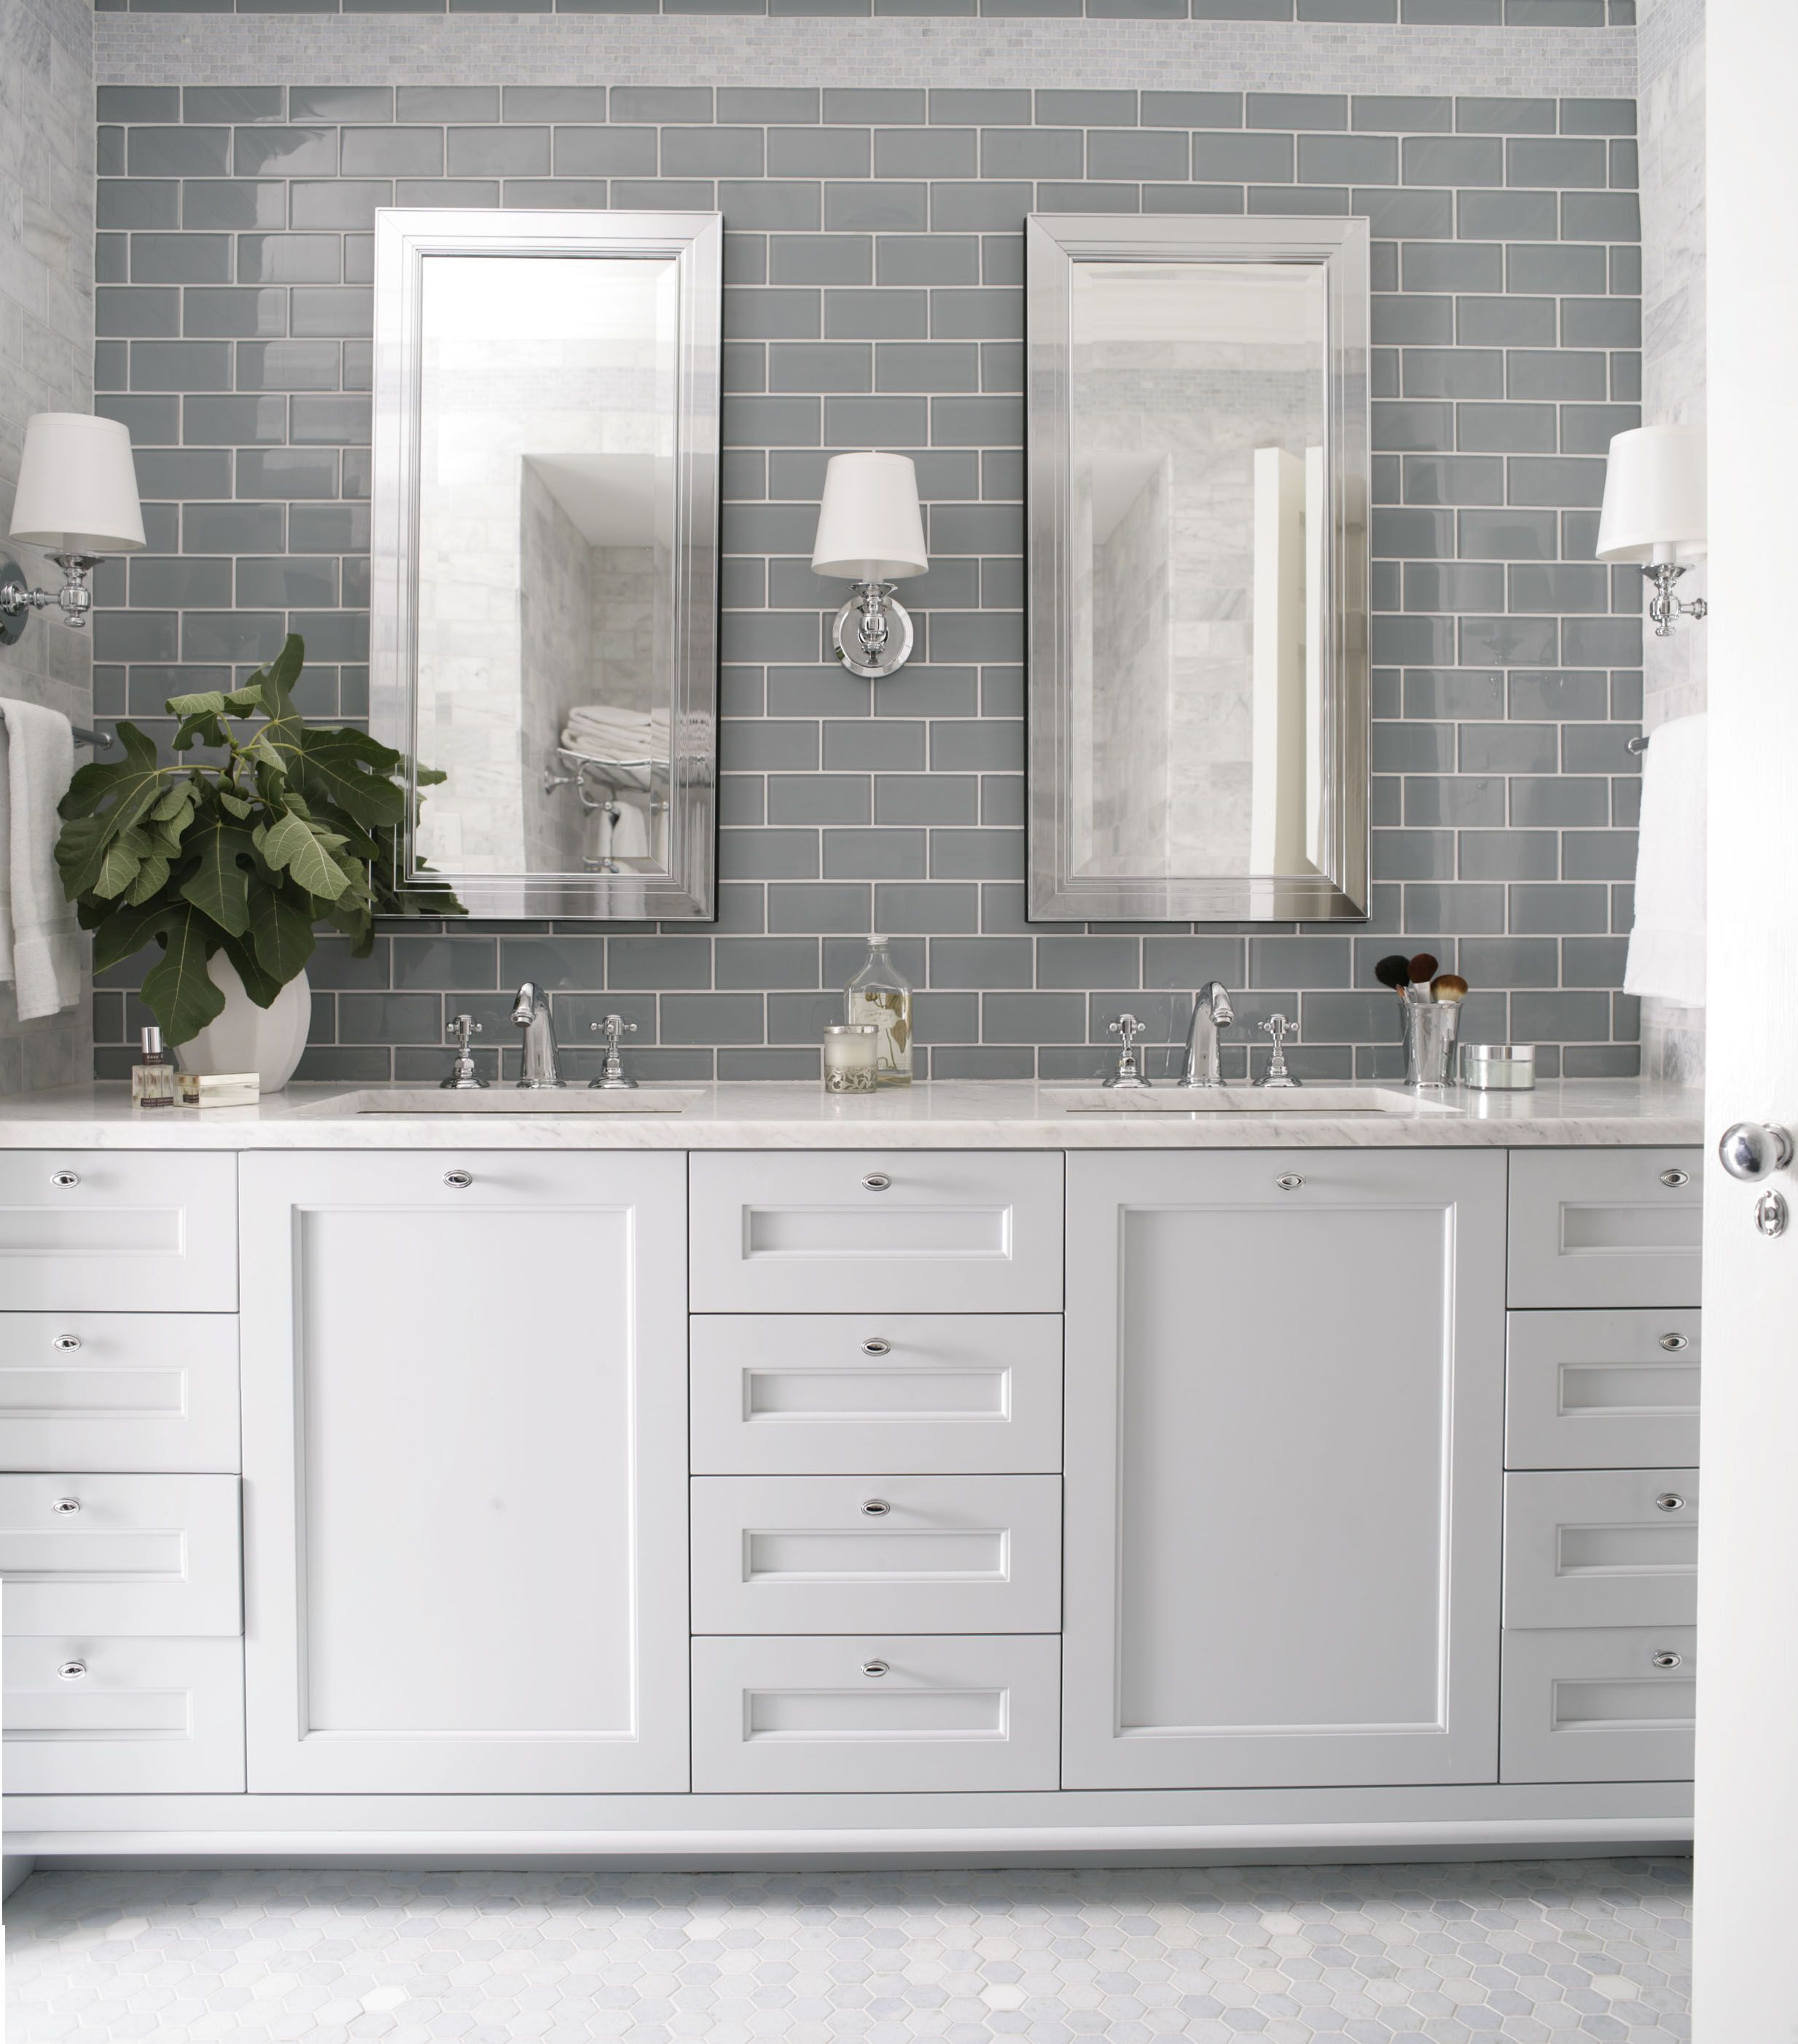 Adding Colour To A Bathroom | Things I love | Pinterest | White ...